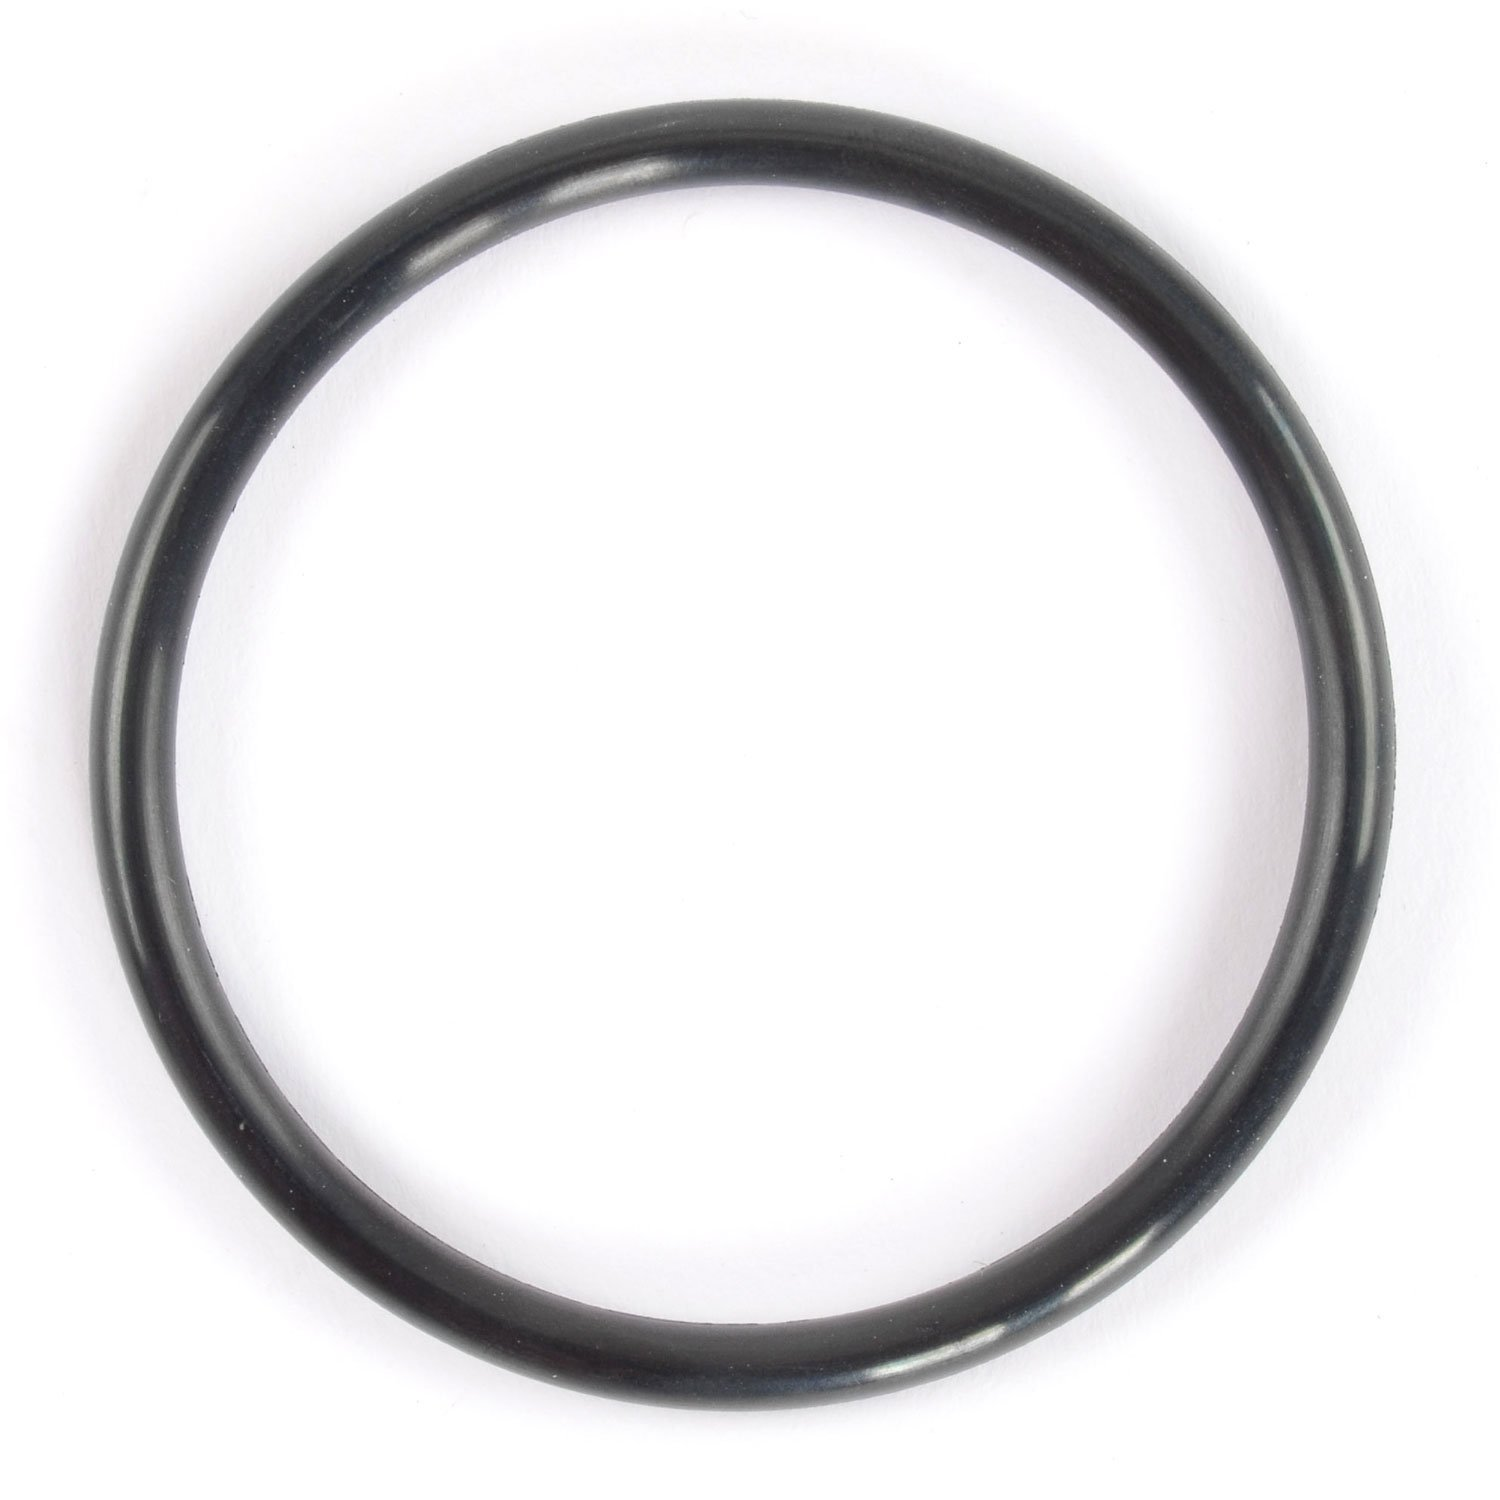 JEGS Performance Products 80225 Replacement O-Ring Made in the USA